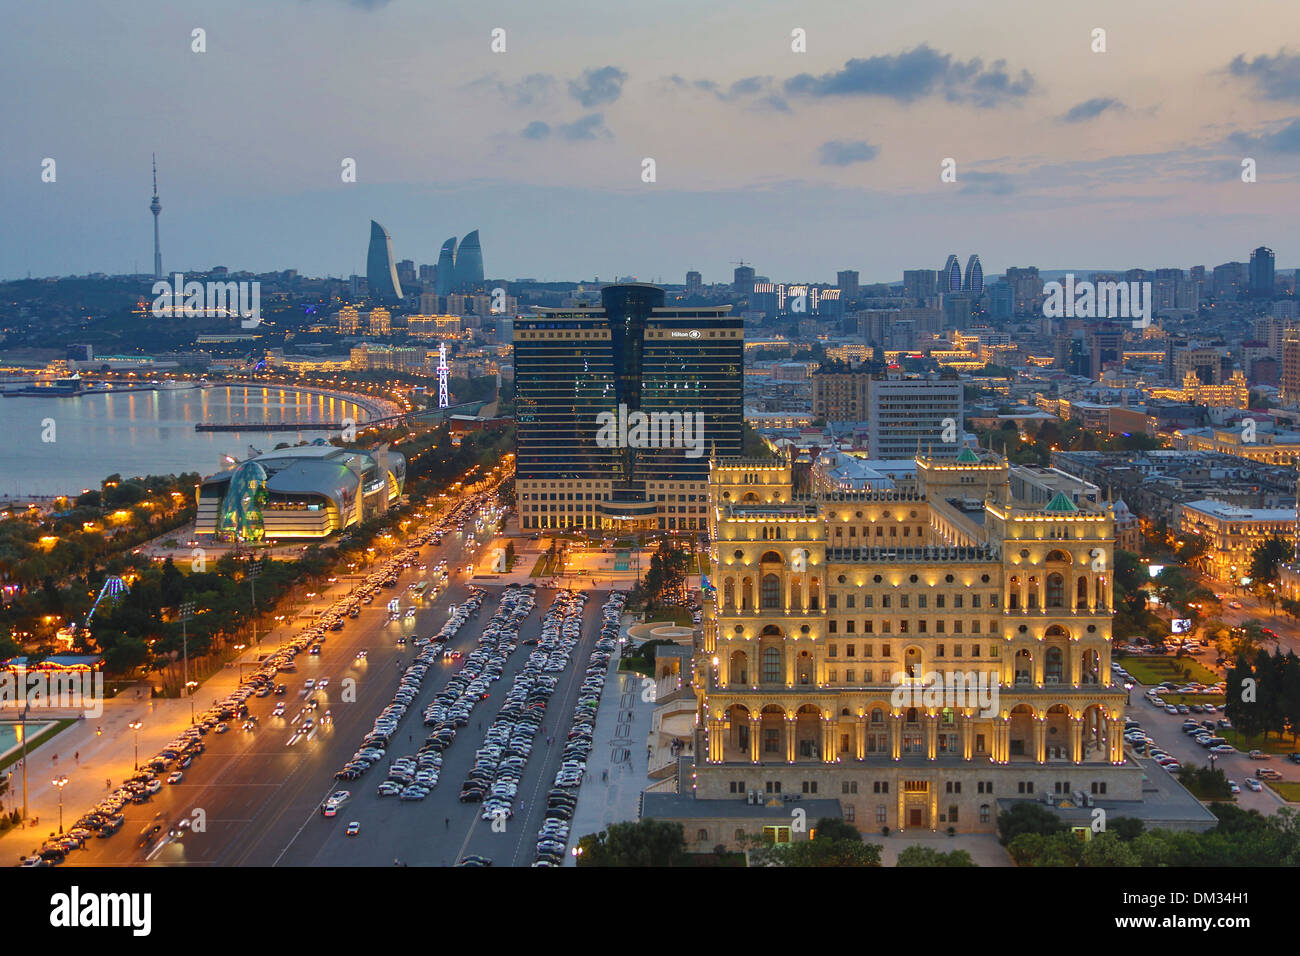 Azerbaijan Caucasus Eurasia Baku Government aerial architecture avenue bay cars city downtown fountains government skyline - Stock Image